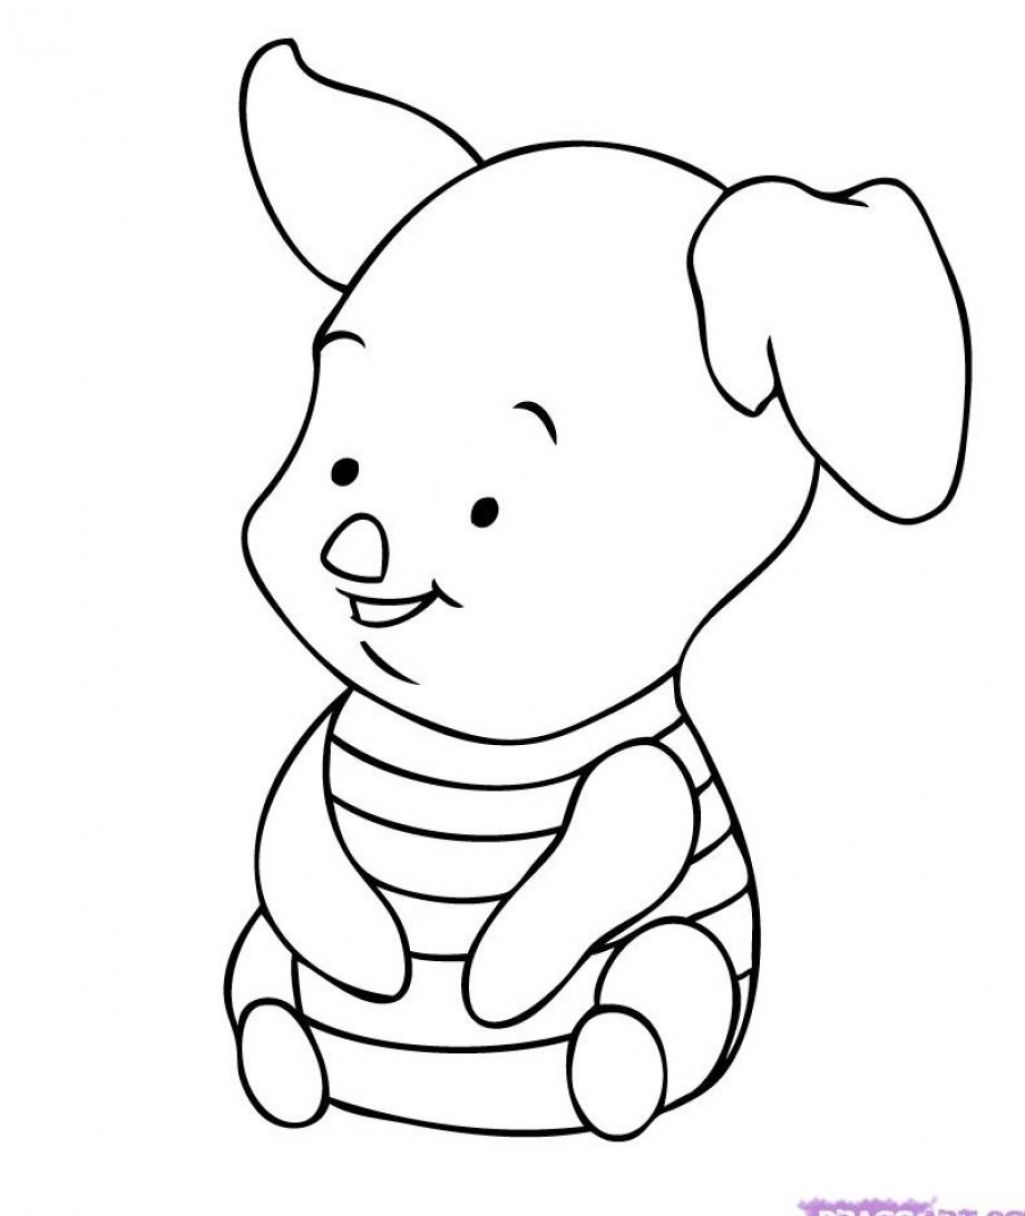 Ba Disney Characters Coloring Pages Printable Coloring Pages ...